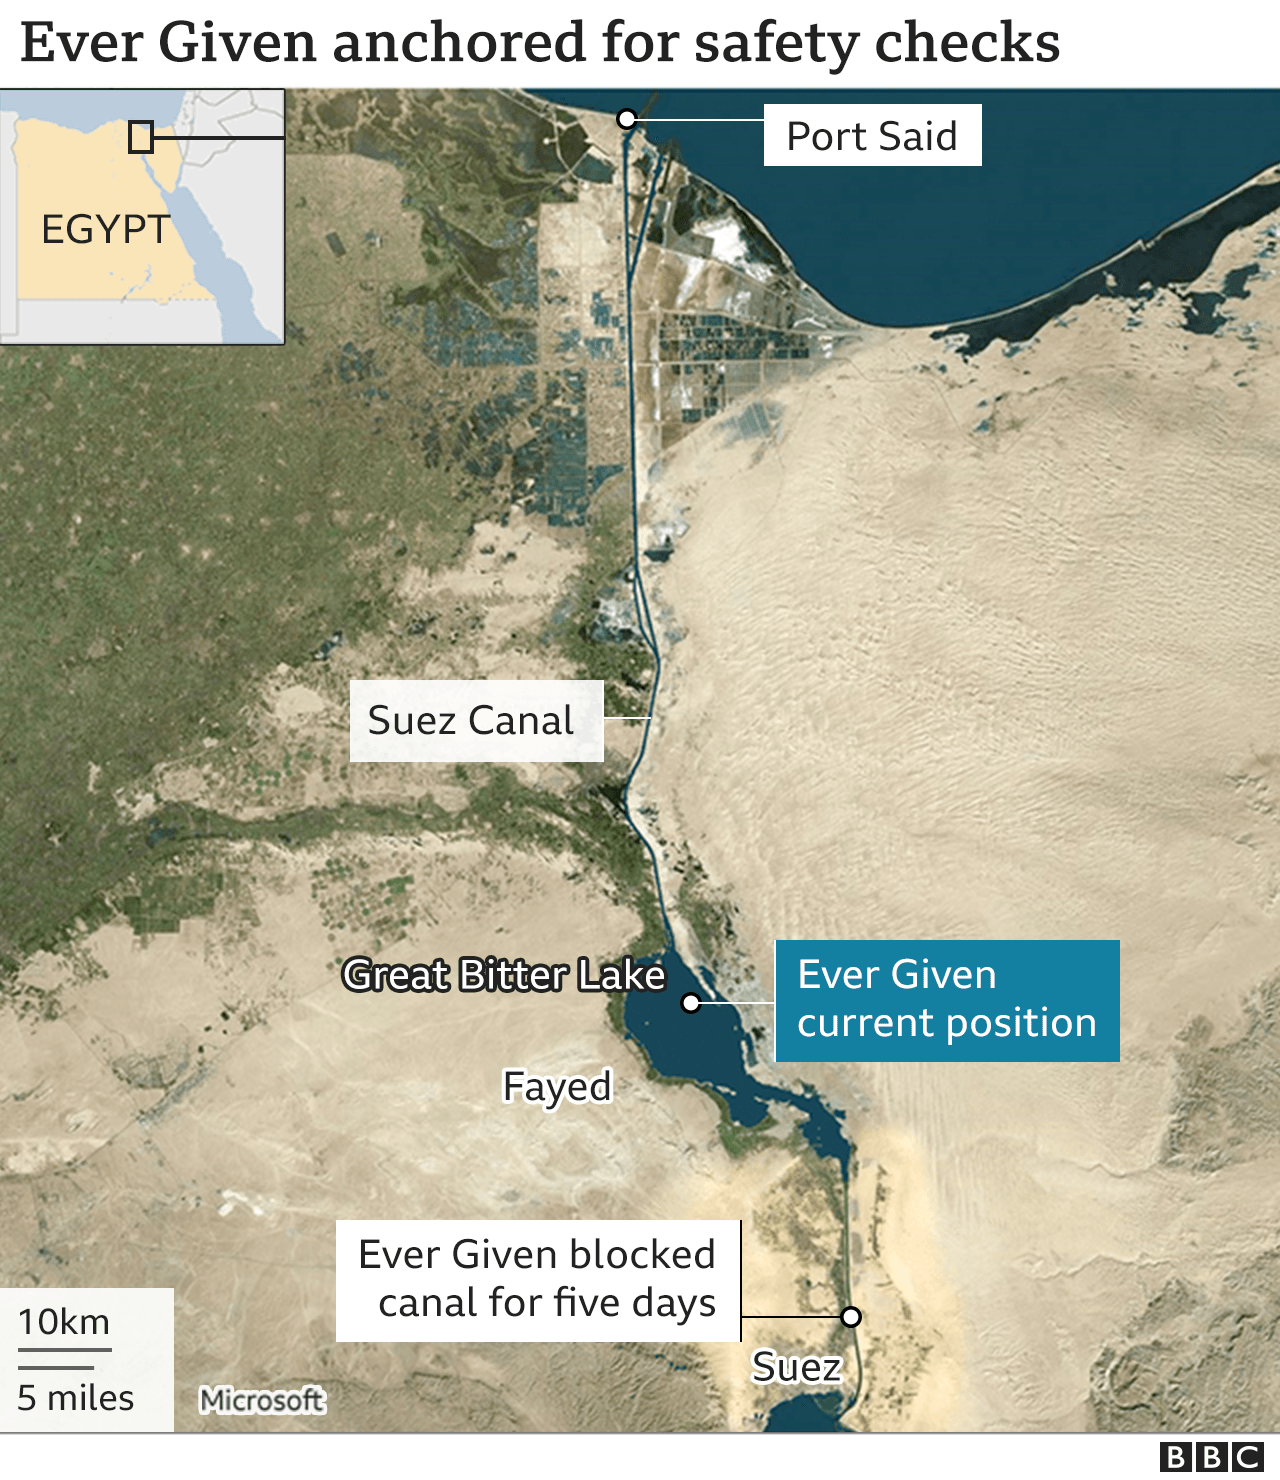 Map showing Suez Canal and location of Ever Given in the Great Bitter Lake (30 March 2021)